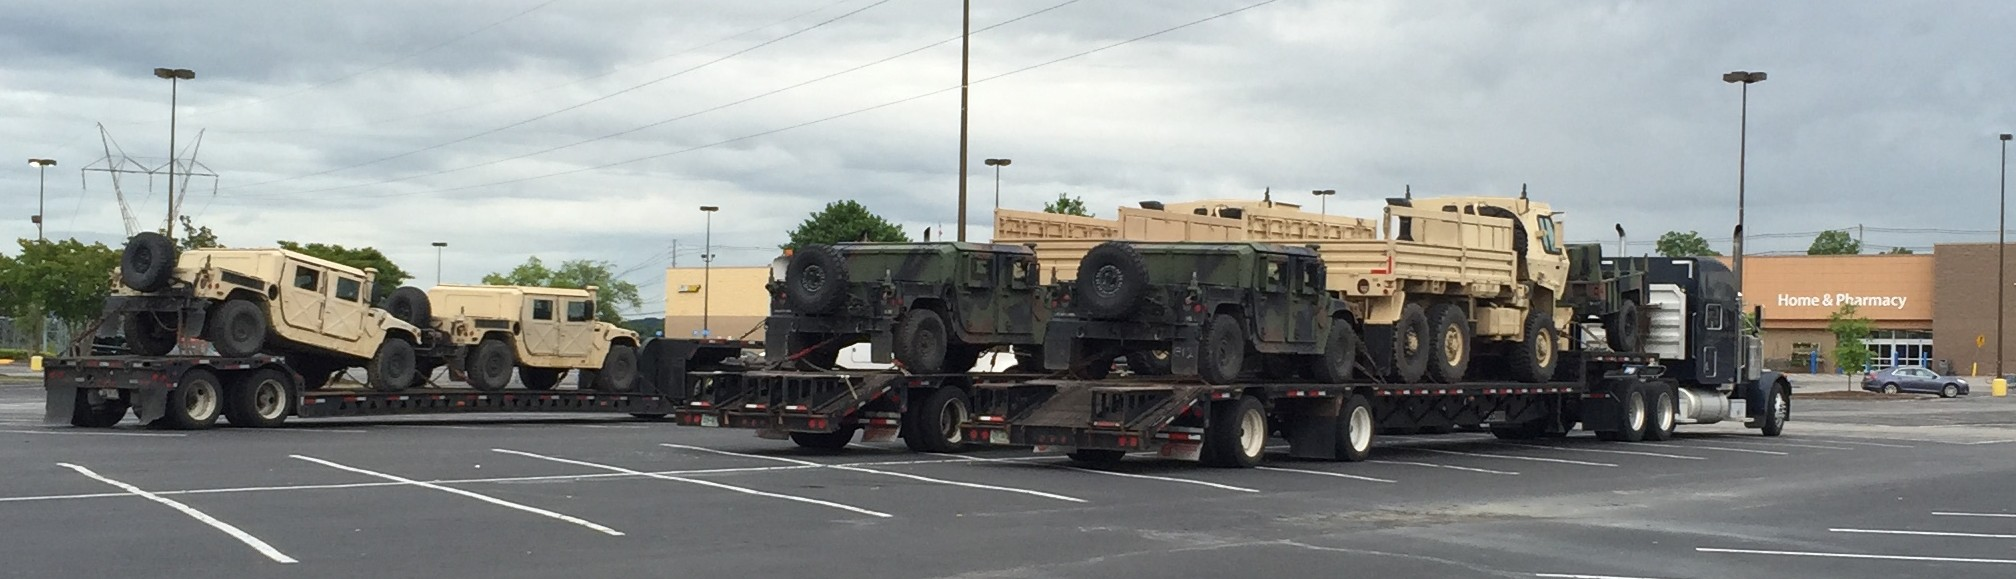 military_vehicles_walmart